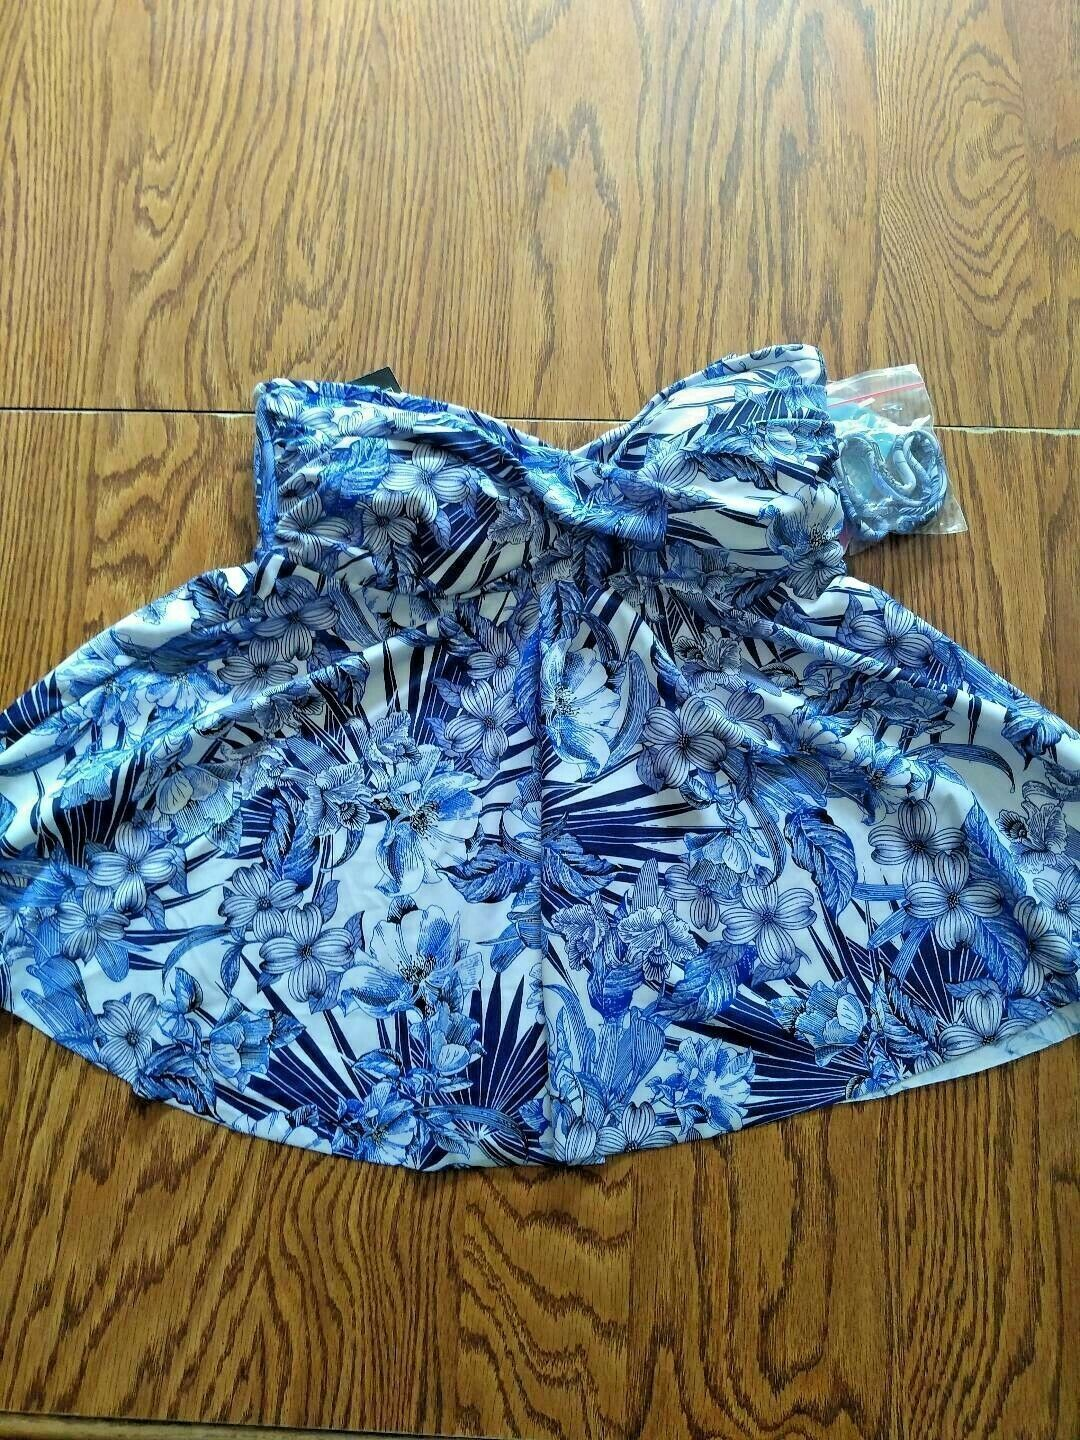 Swim Solutions Fly Away Black/Blue Bust Support Swimwear Top Size 8